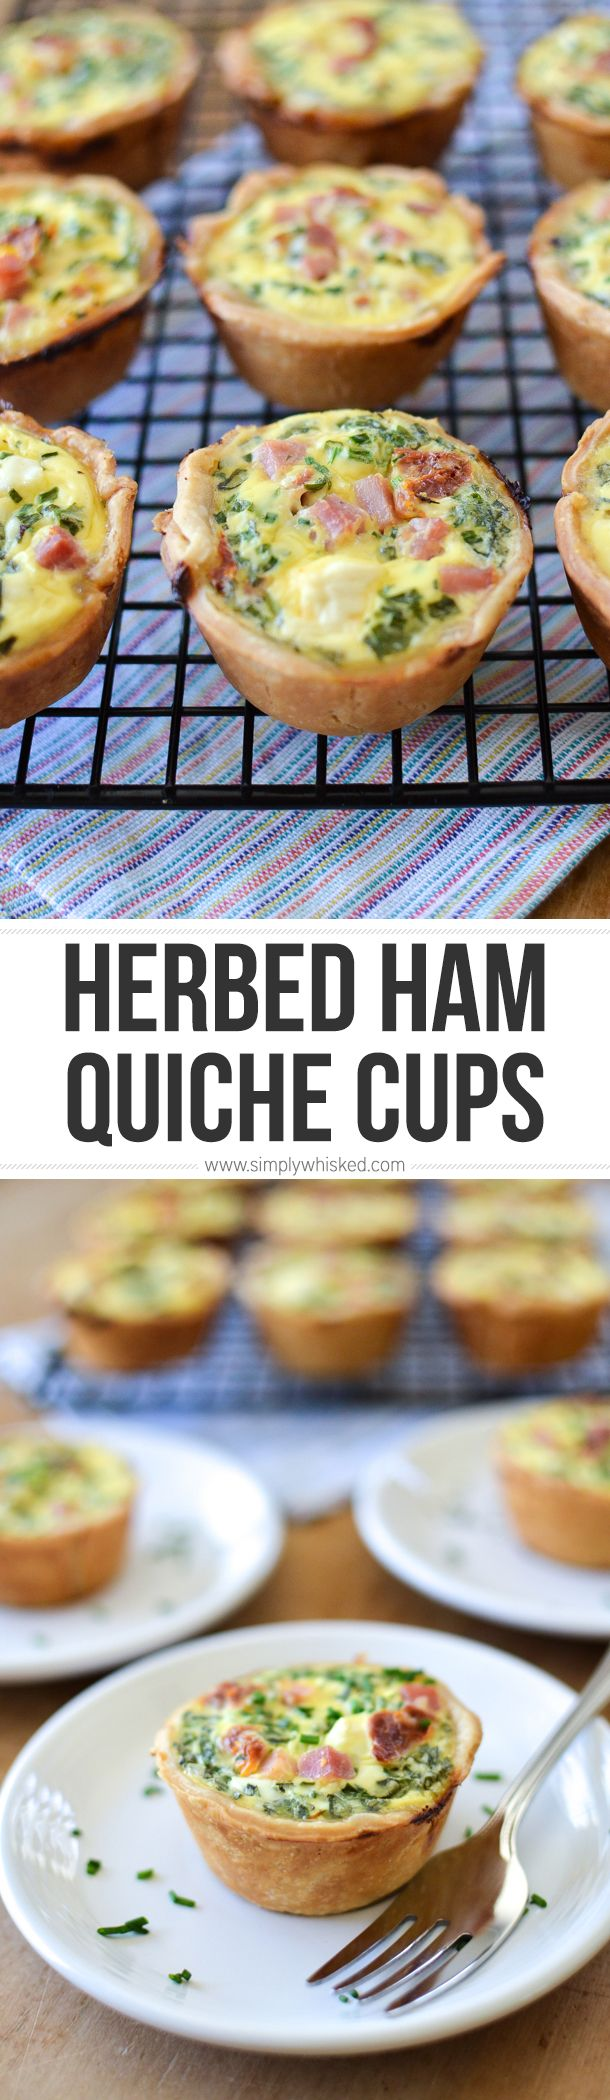 Herbed Ham & Sun Dried Tomato Quiche Cups | breakfast recipe